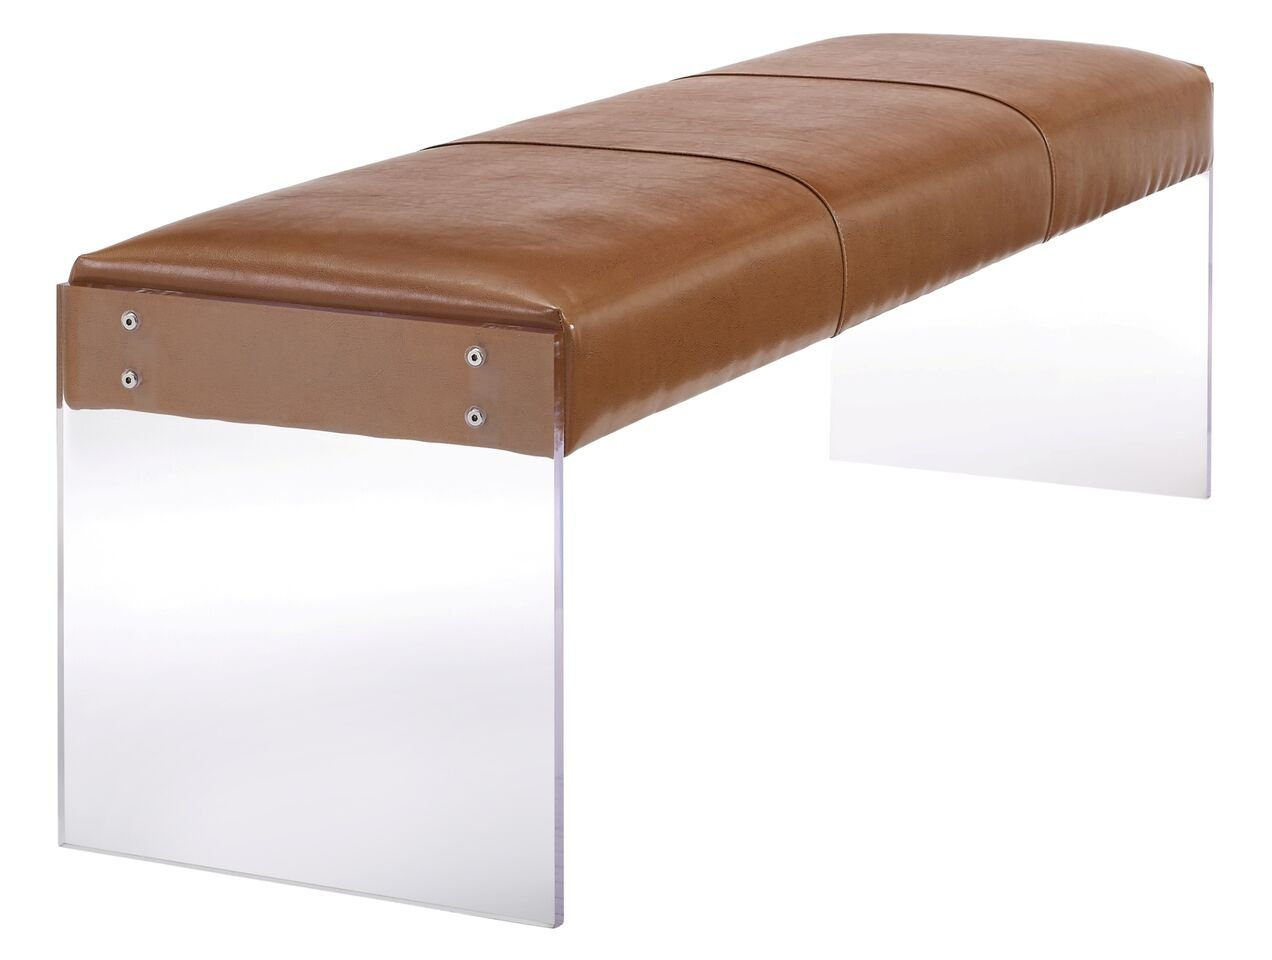 Tov Furniture Envy Leather/Acrylic Bench, Brown by Tov Furniture (Image #3)